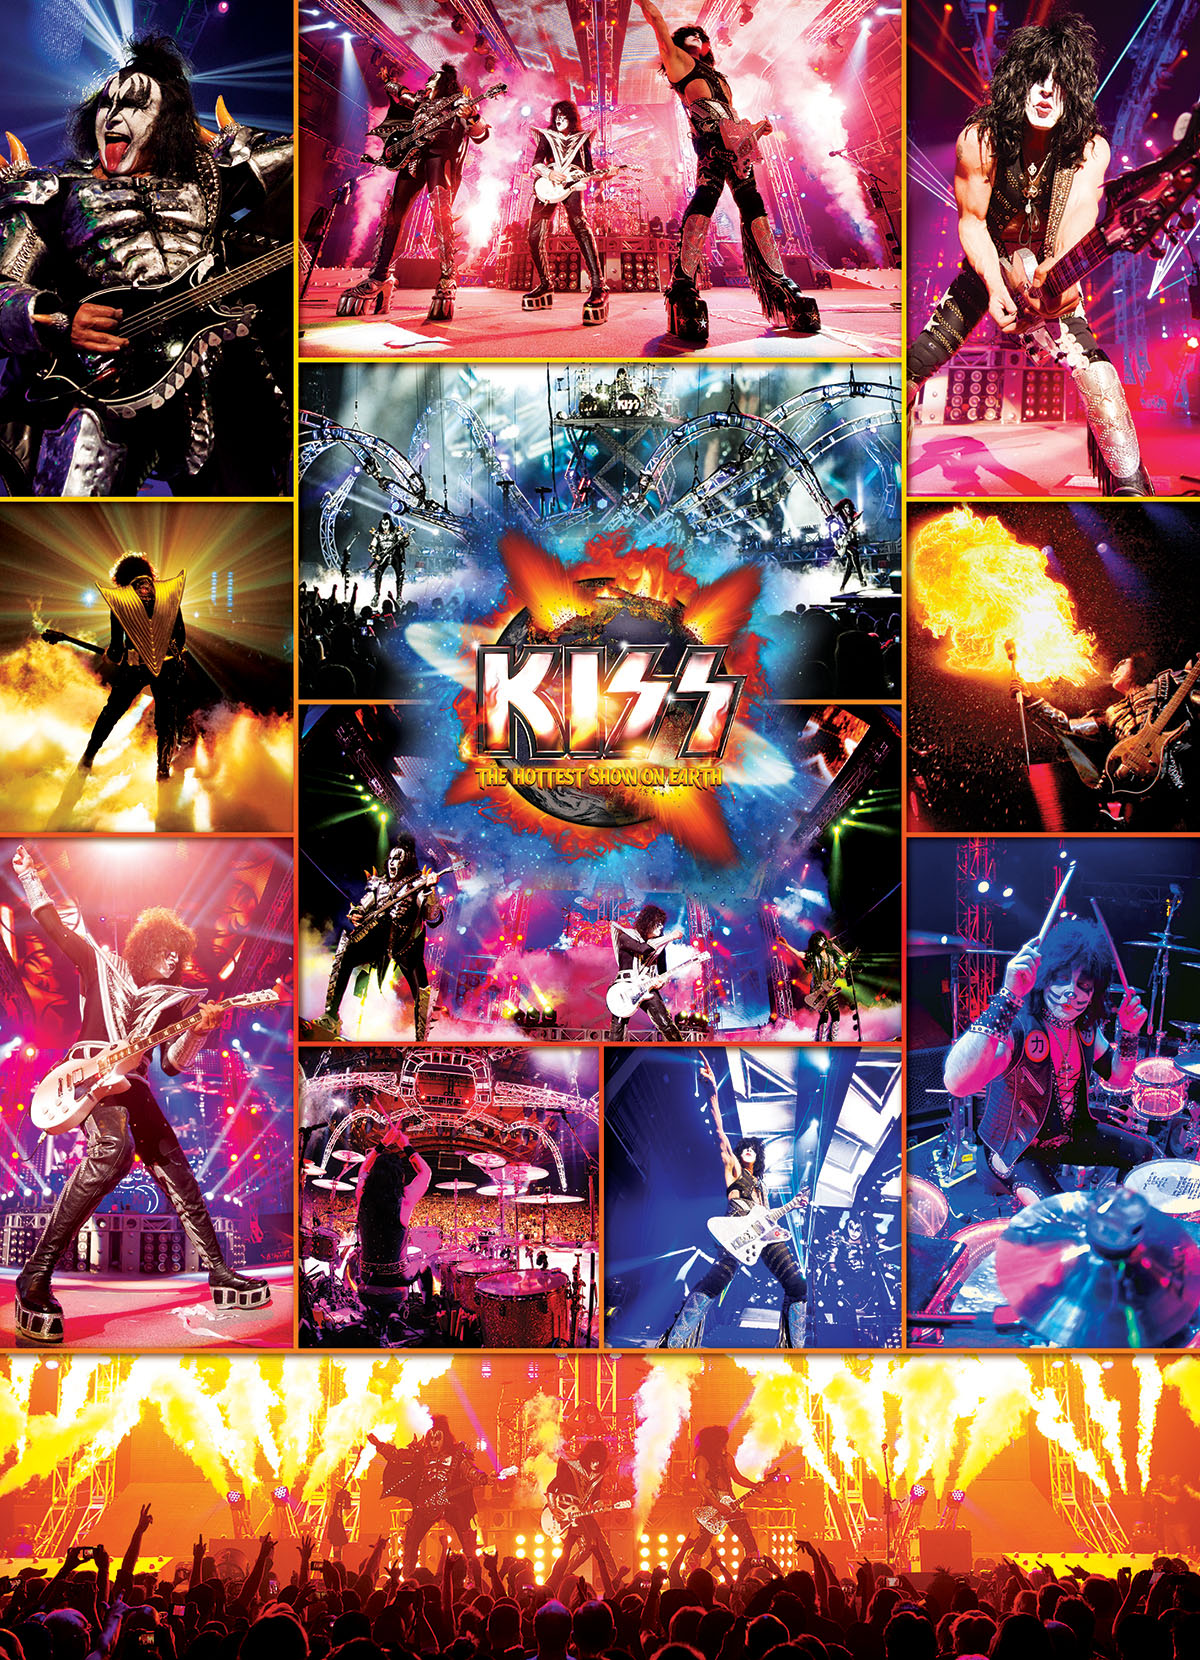 kiss-the-hottest-show-on-earth